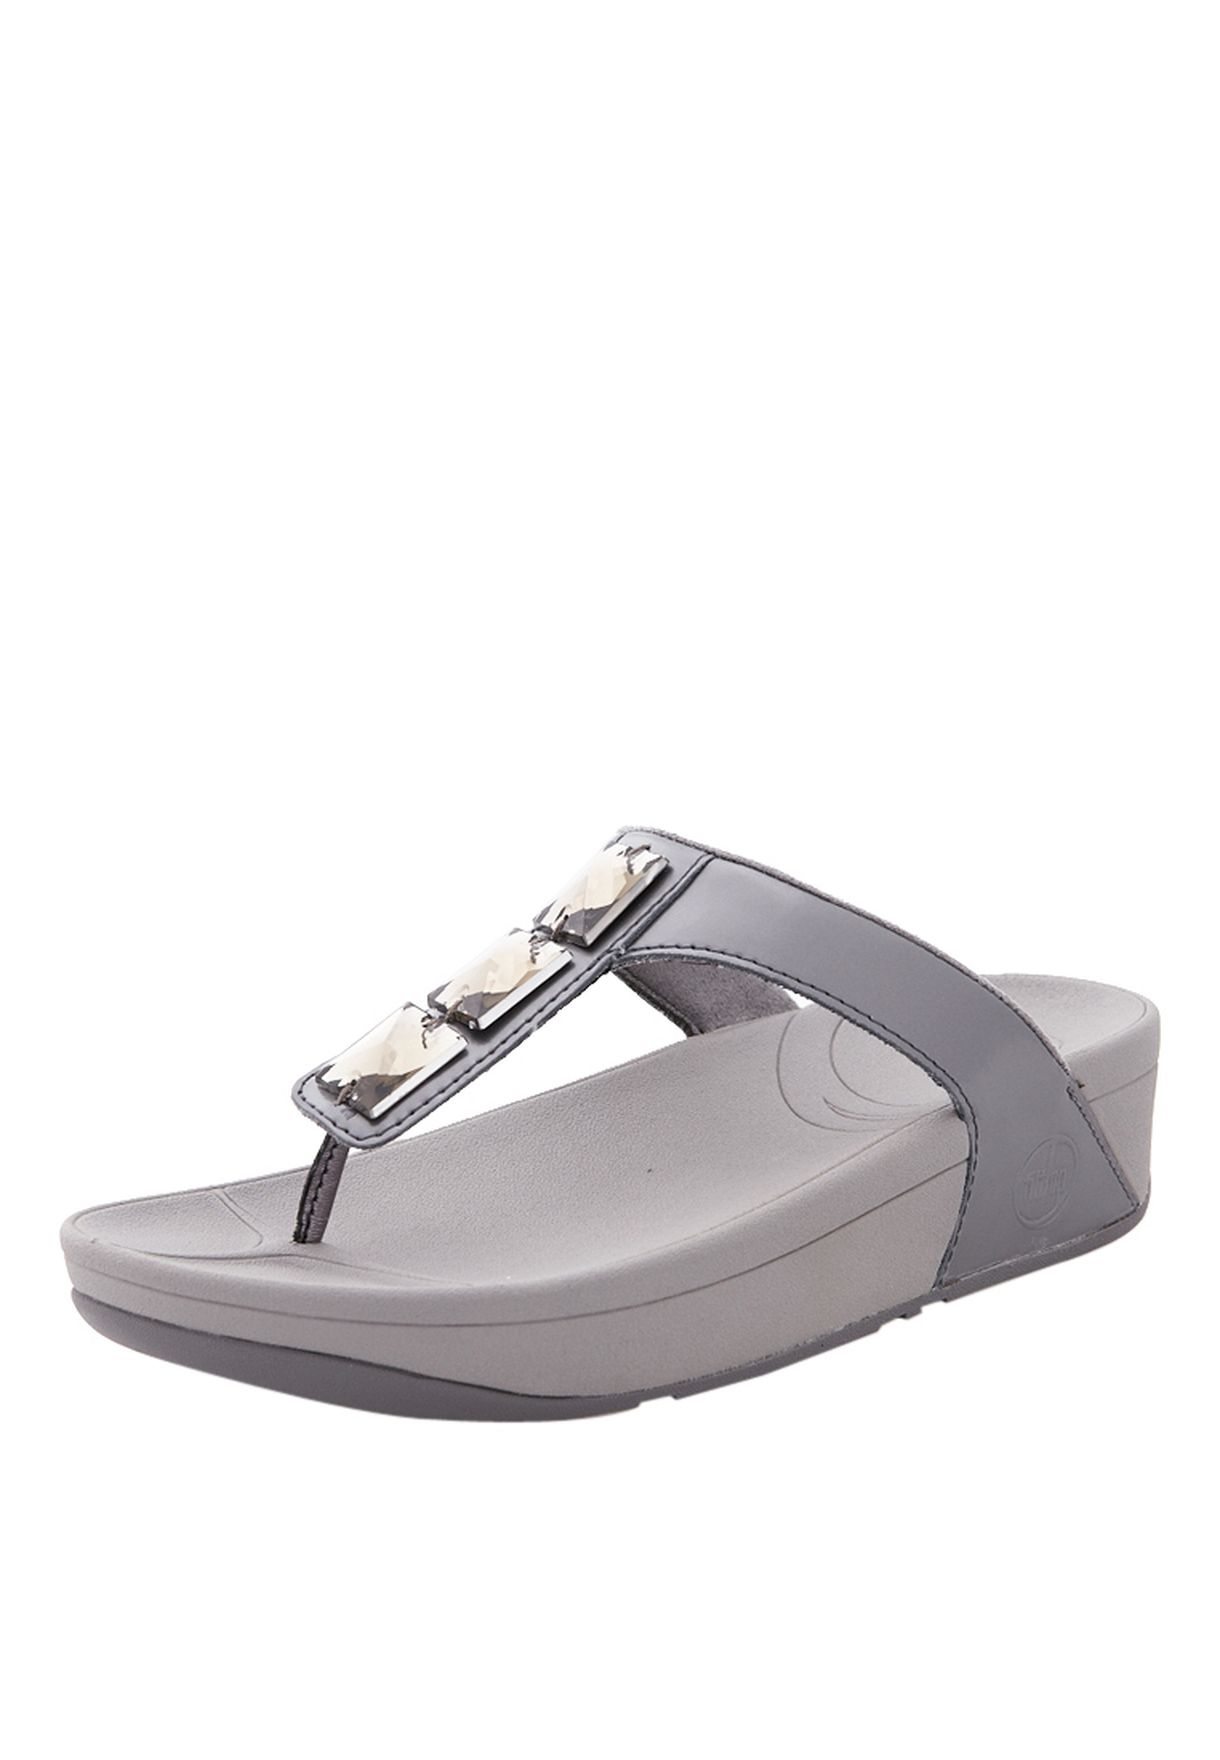 ca9c4ad73 Shop Fitflop grey Pietra Flat Sandals for Women in Bahrain ...